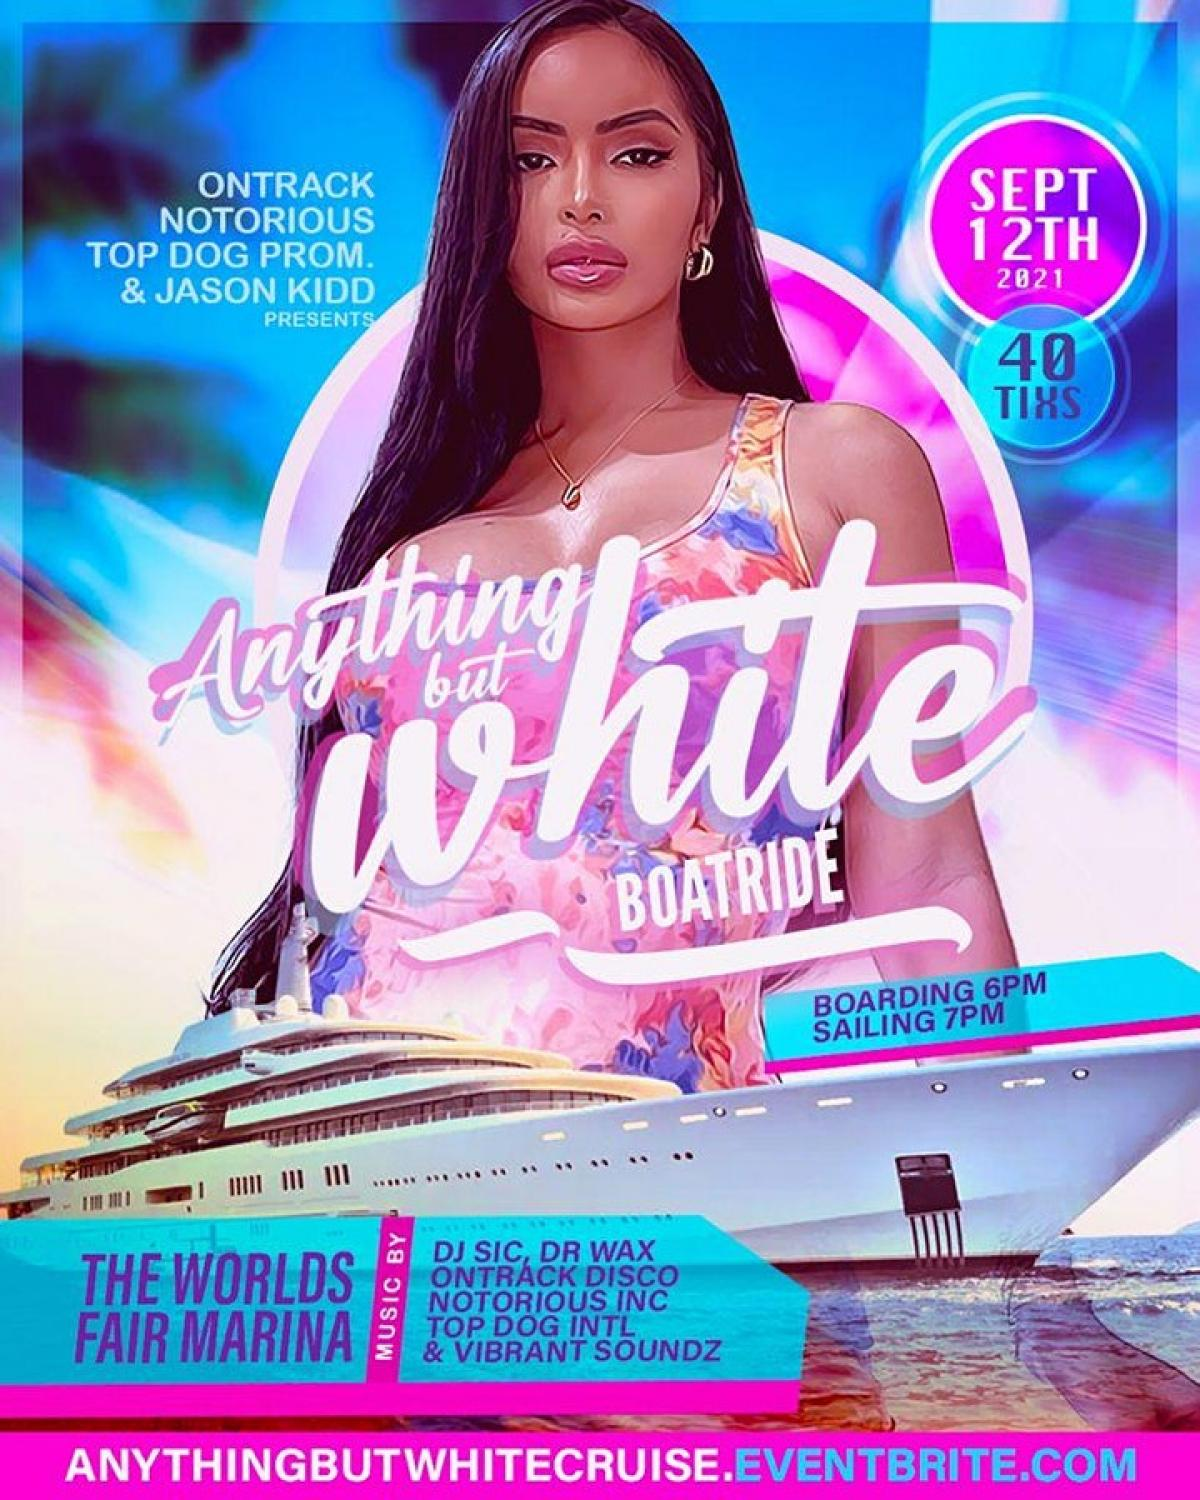 Anything But White Boat Ride flyer or graphic.